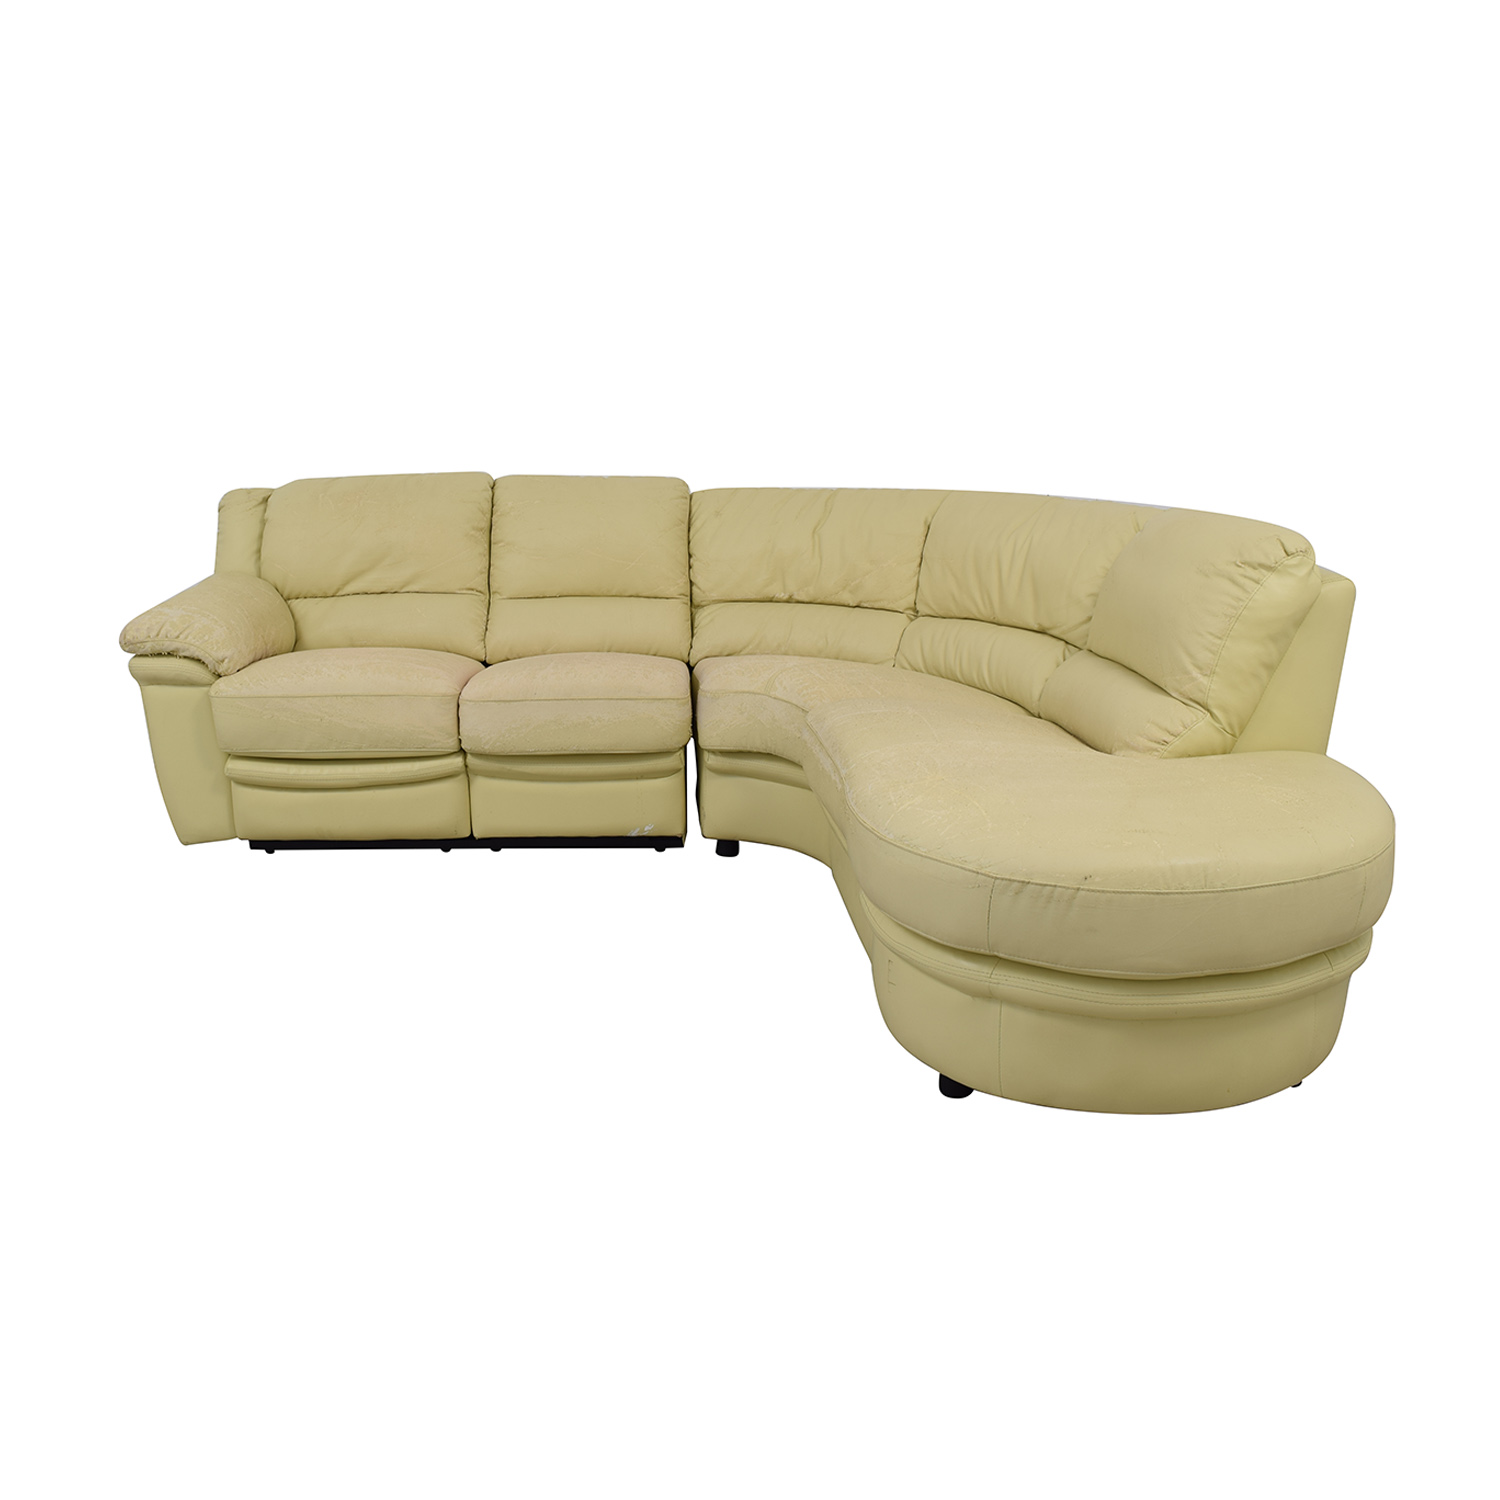 Beige L-Shaped One Reclining Chair Sectional Sofas